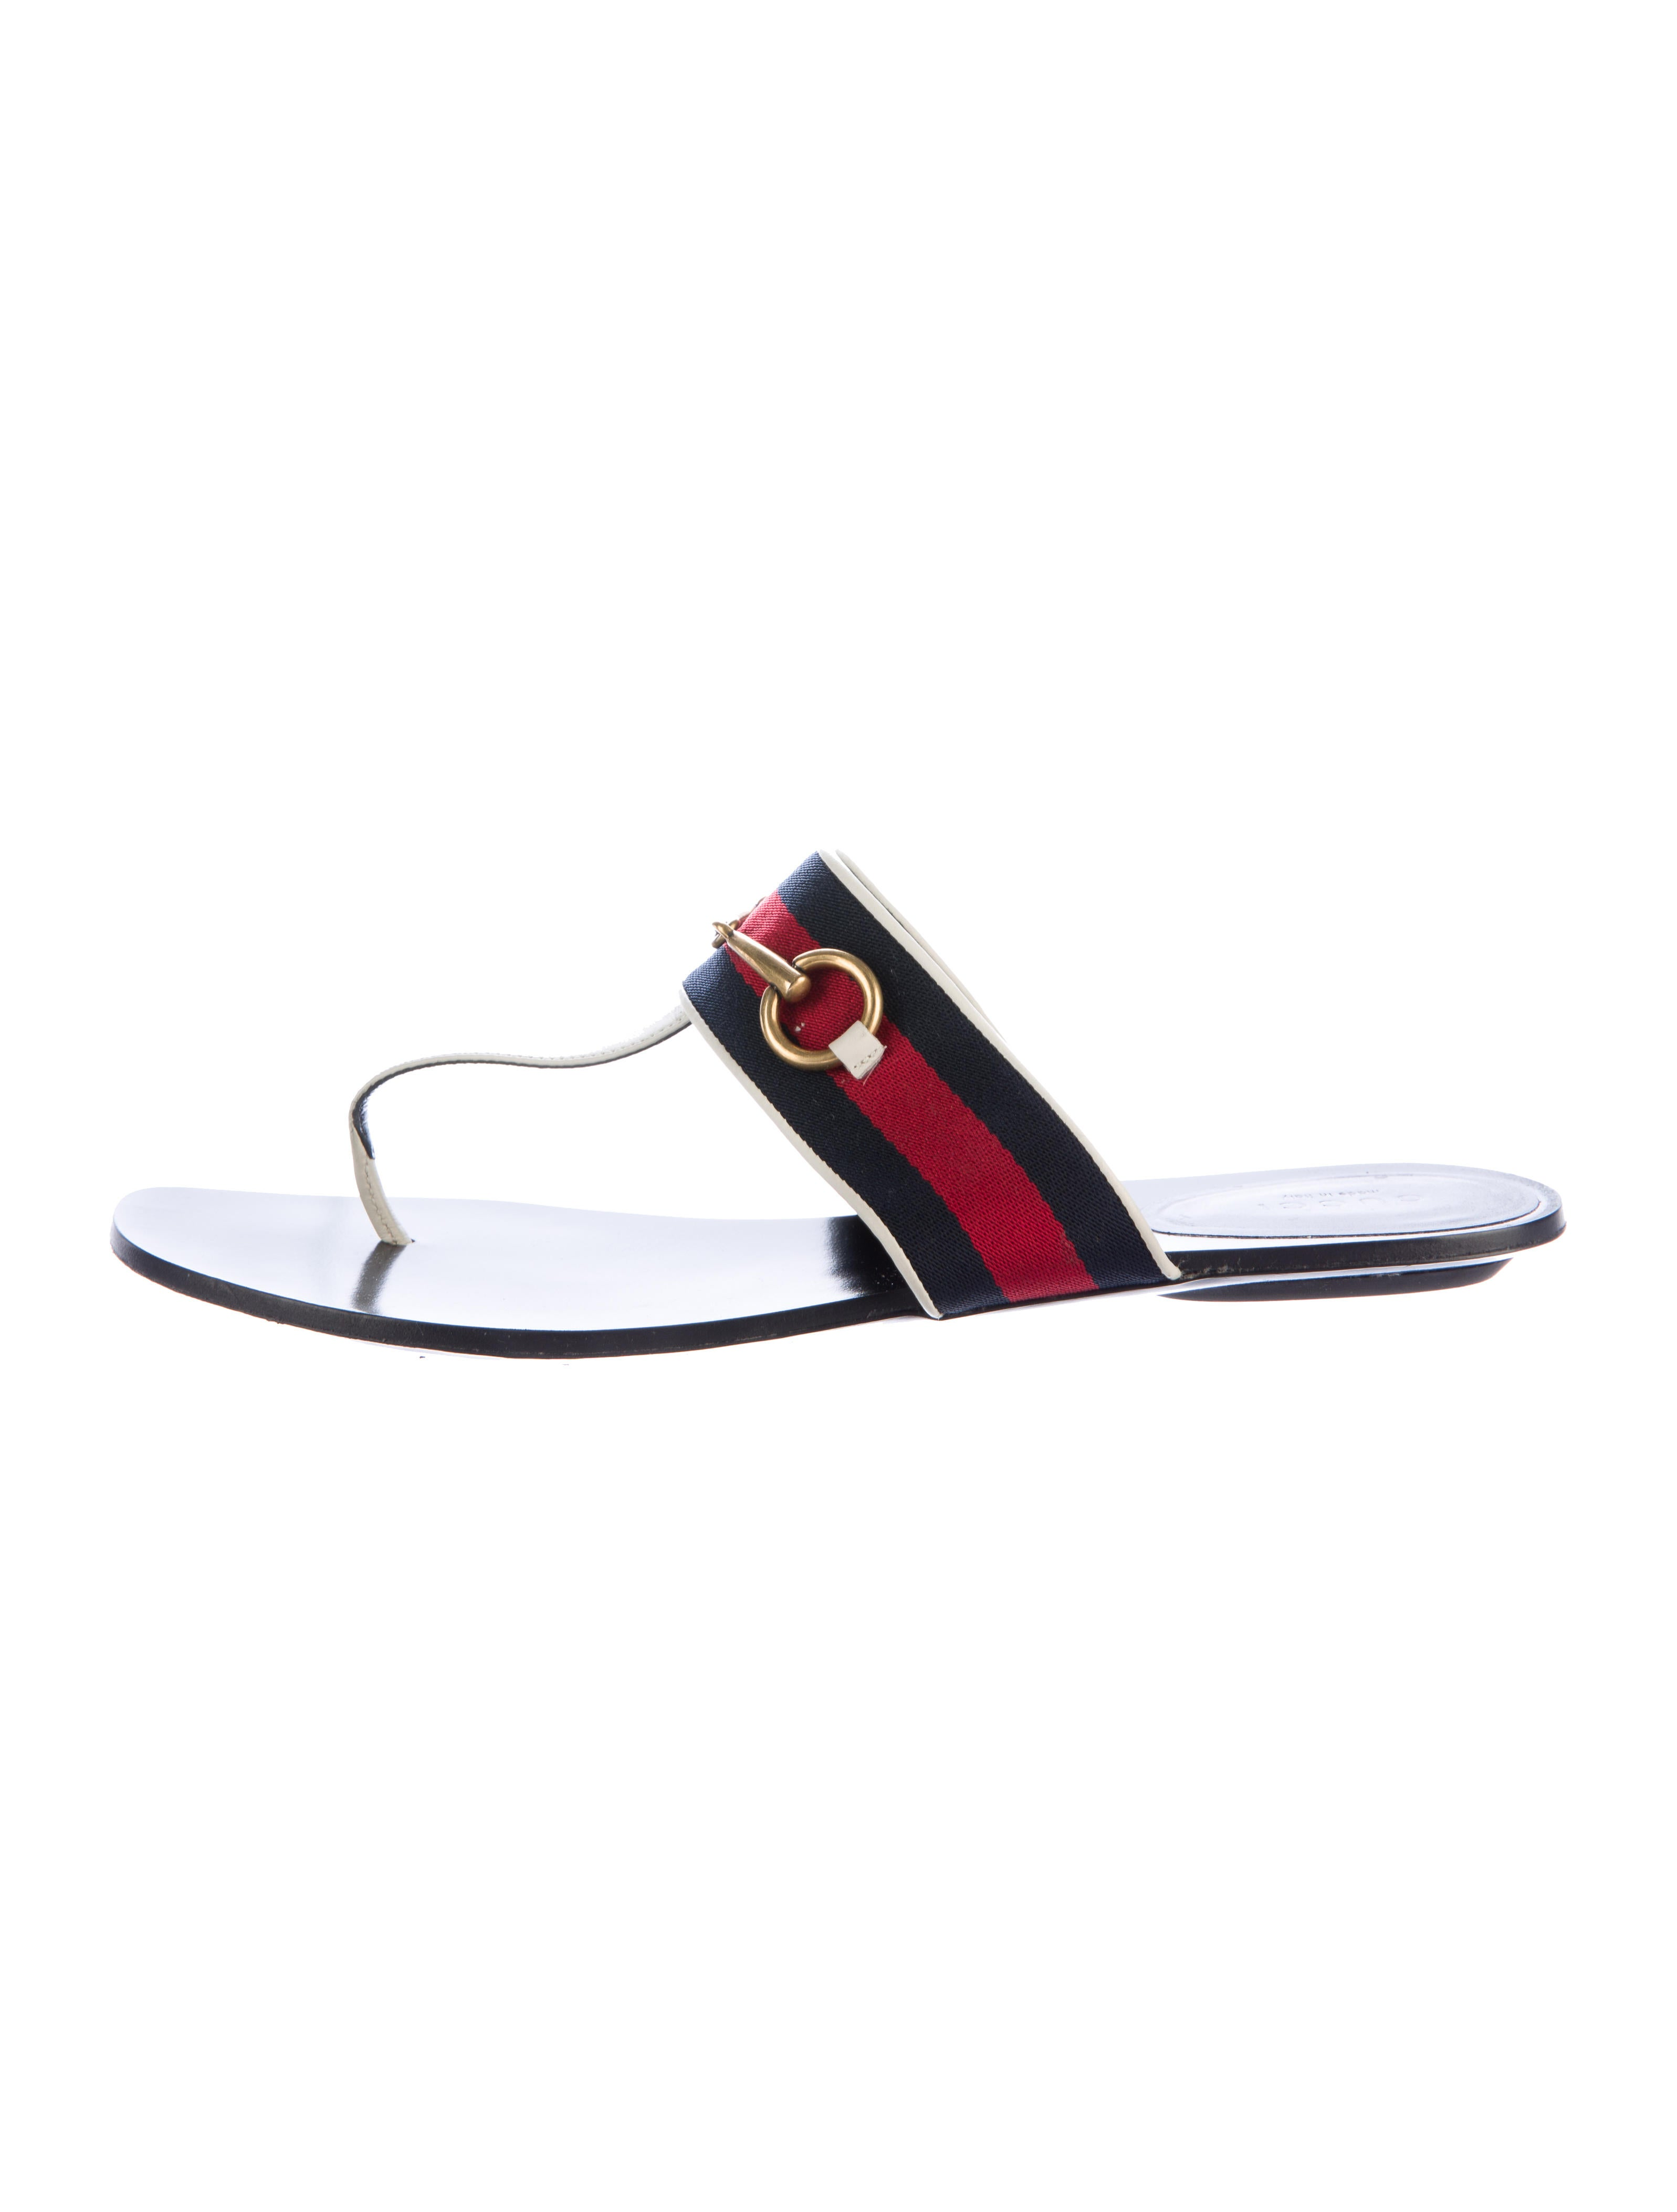 f2ee5cff6ae6 Gucci Querelle Thong Sandals - Shoes - GUC149435